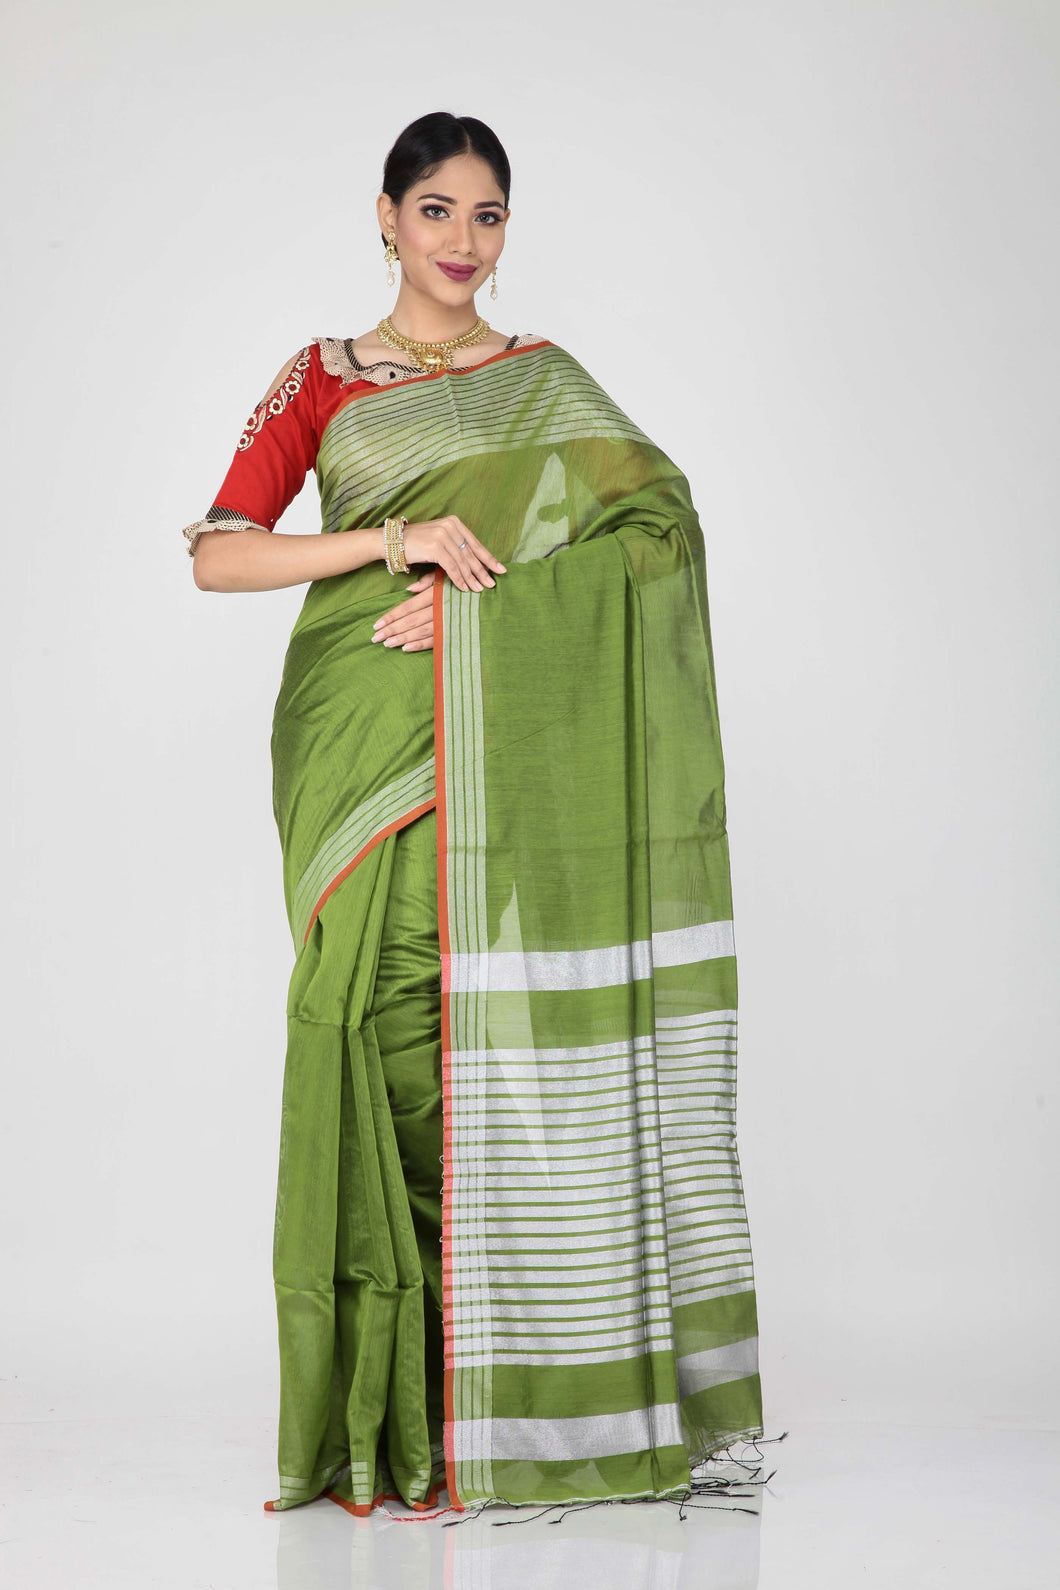 The lady is wearing a green handloom saree